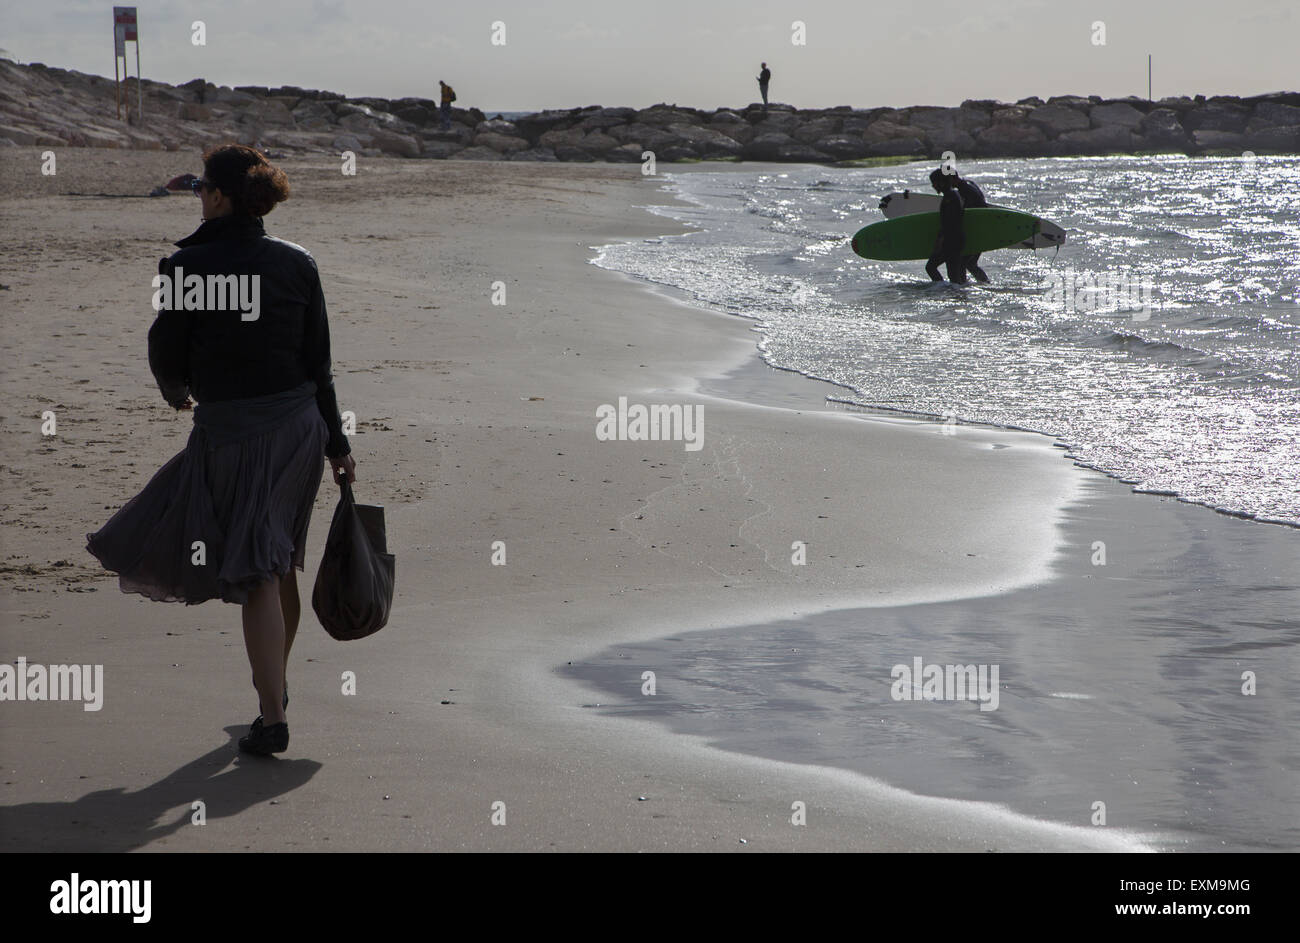 TEL AVIV, ISRAEL - MARCH 2, 2015: The silhouette of walked woman and surfers on the beach of Tel Aviv. - Stock Image